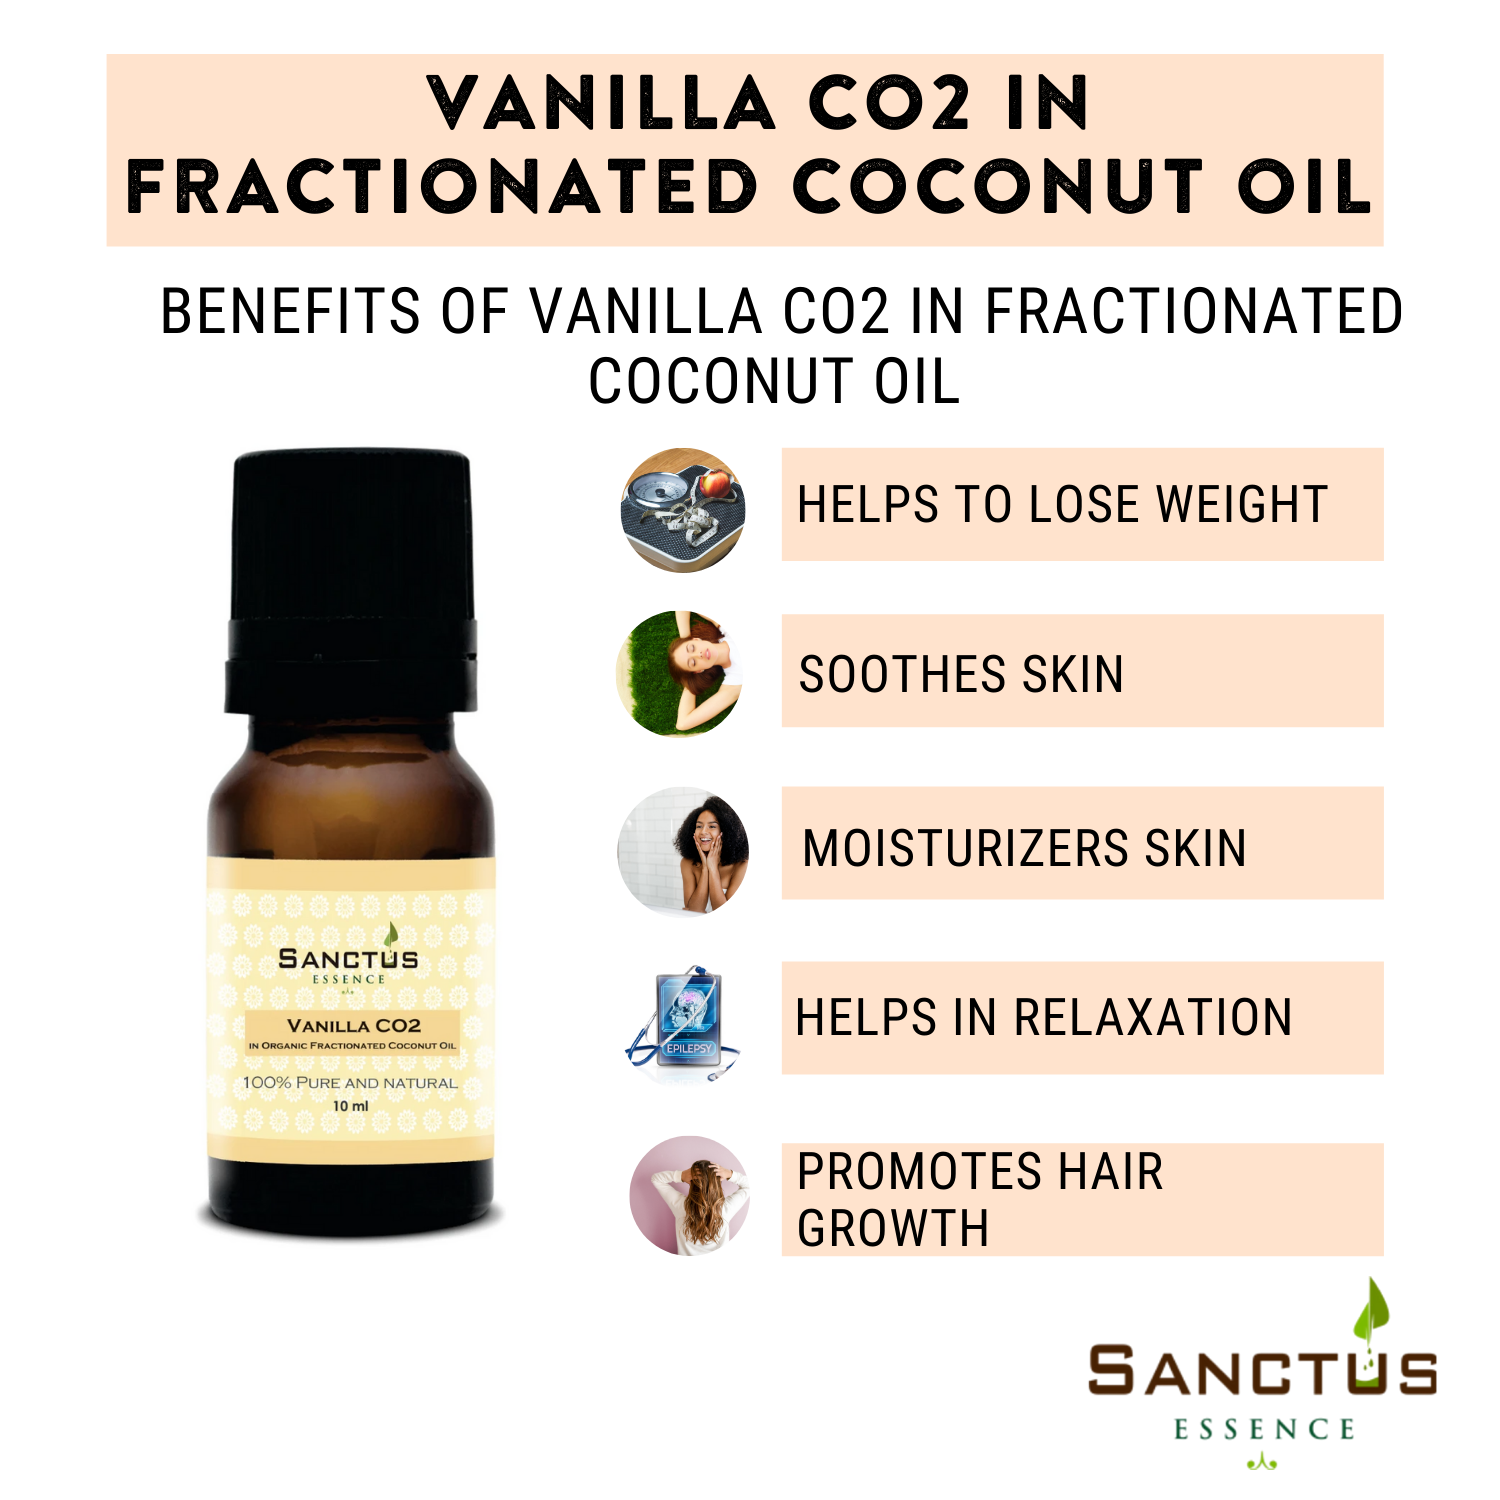 Vanilla CO2 in Organic Fractionated Coconut Oil